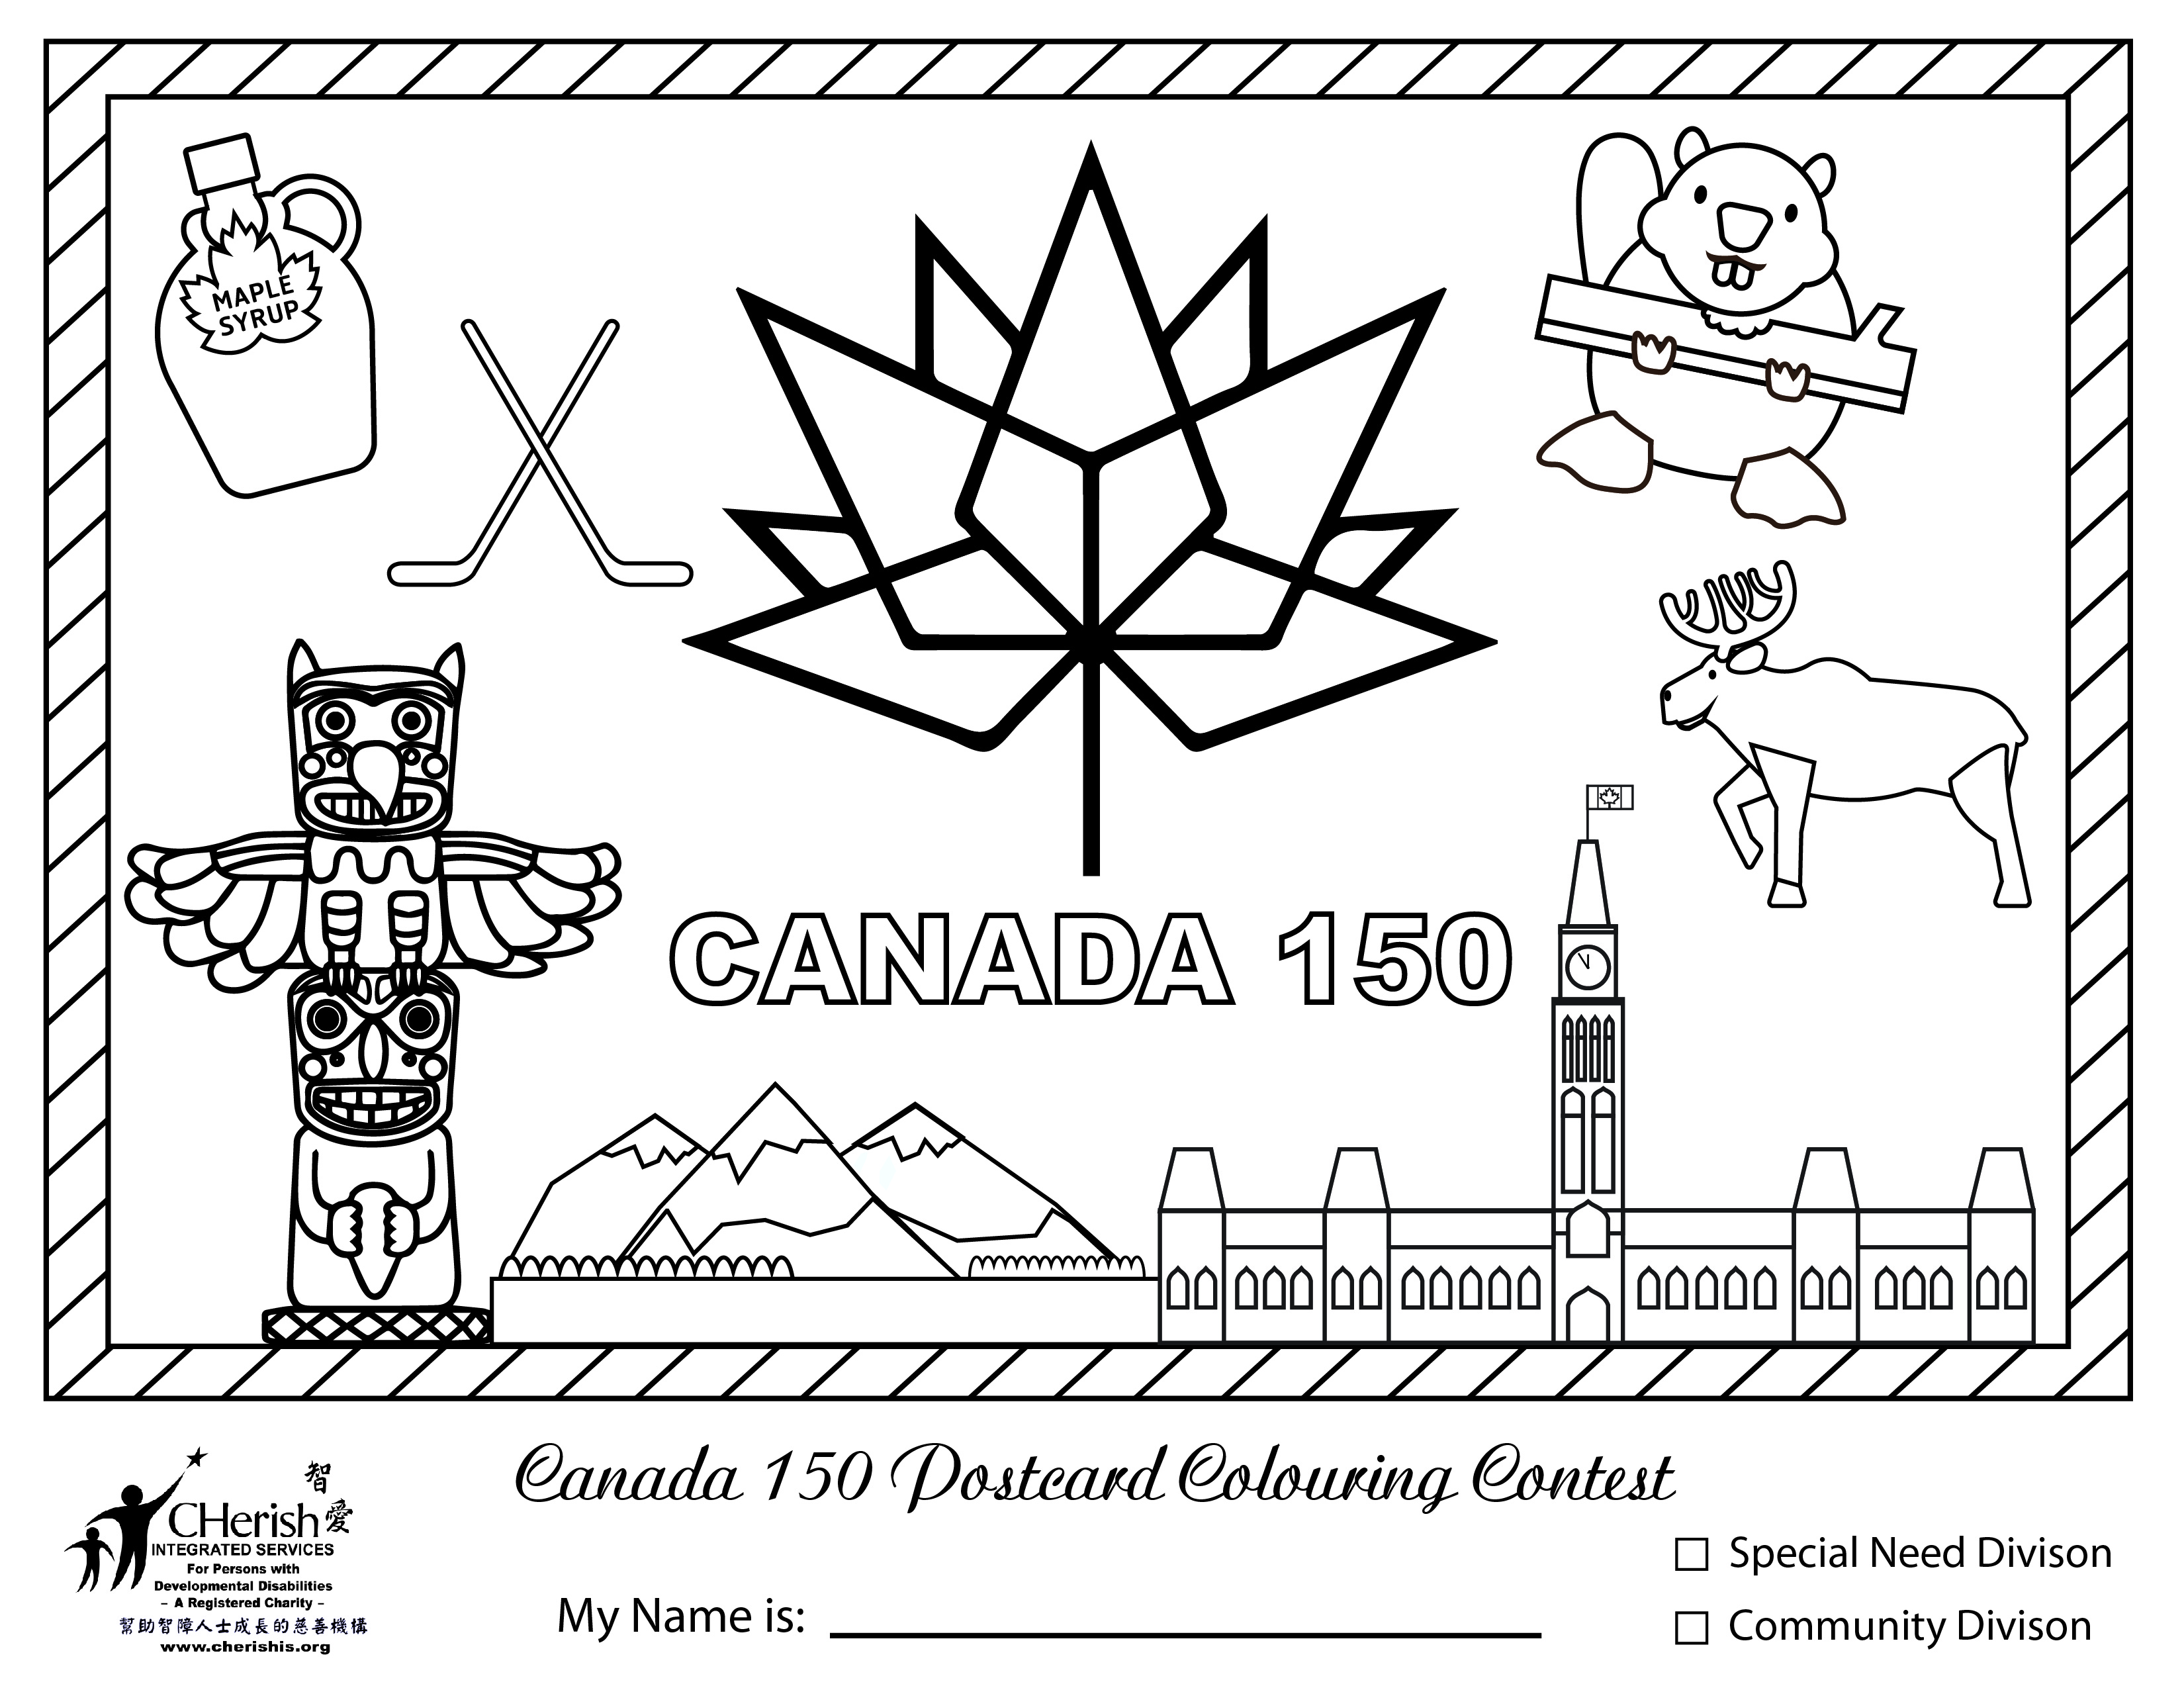 CHerish Integrated Services » Canada 150 Postcard